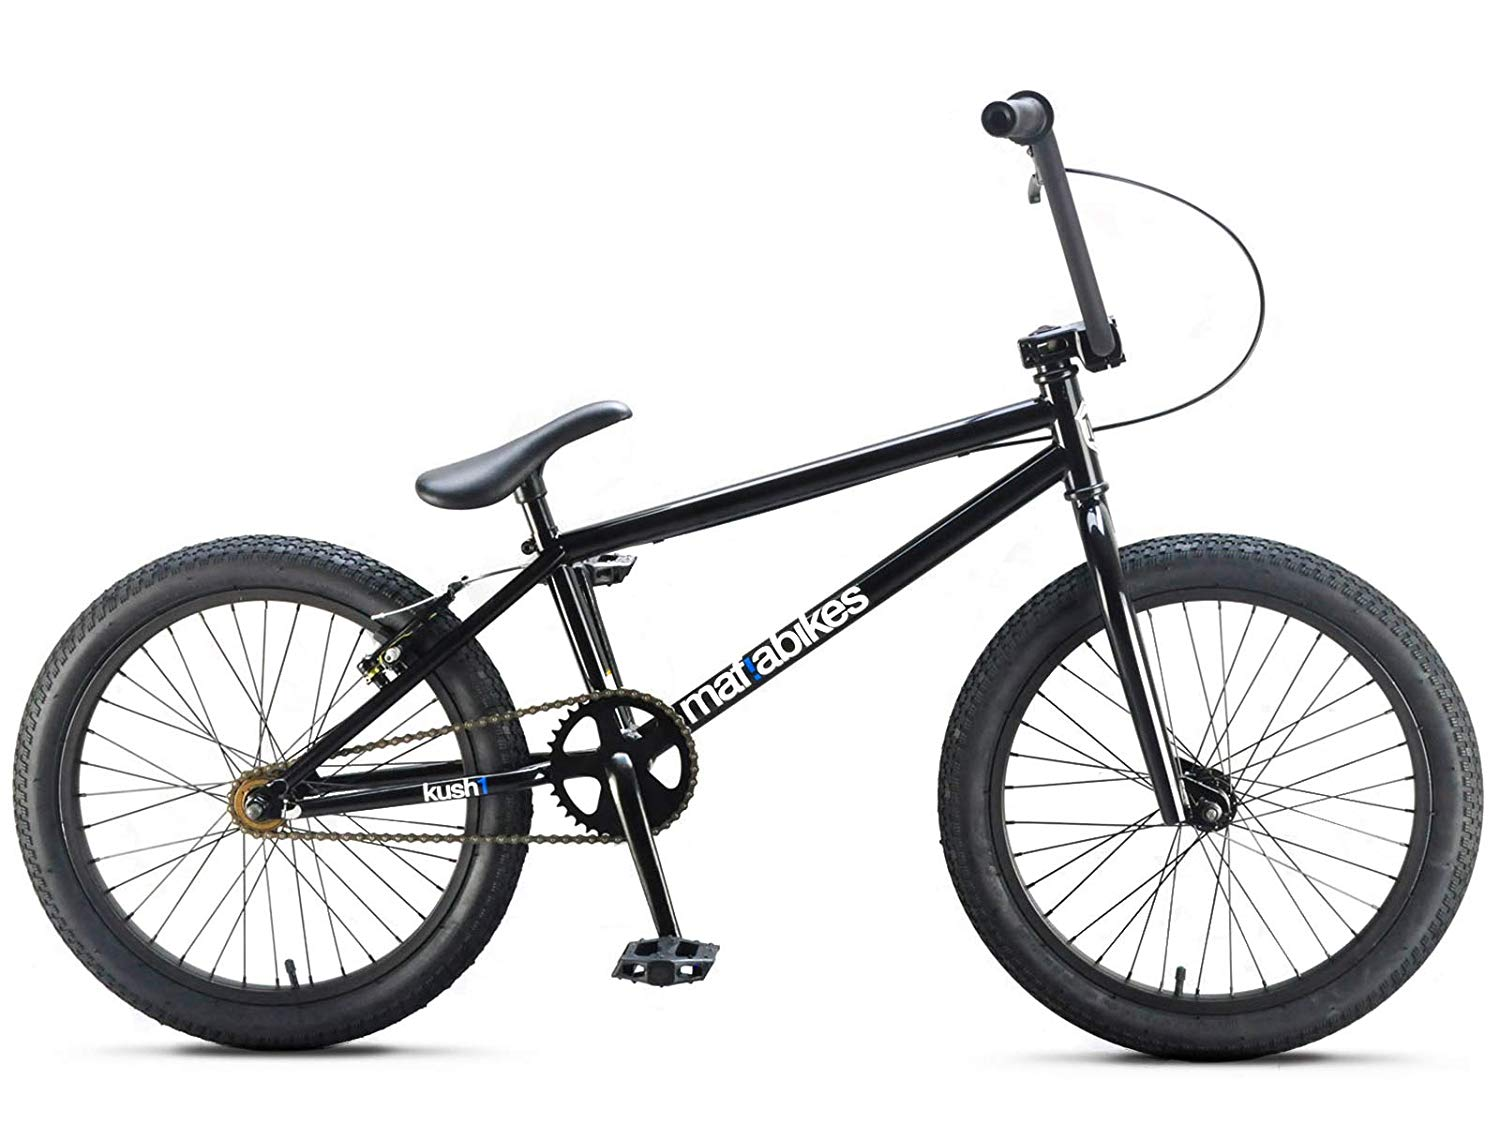 Mafiabikes BB Kush 16 inch Child's Kid's BMX Bike Review ...